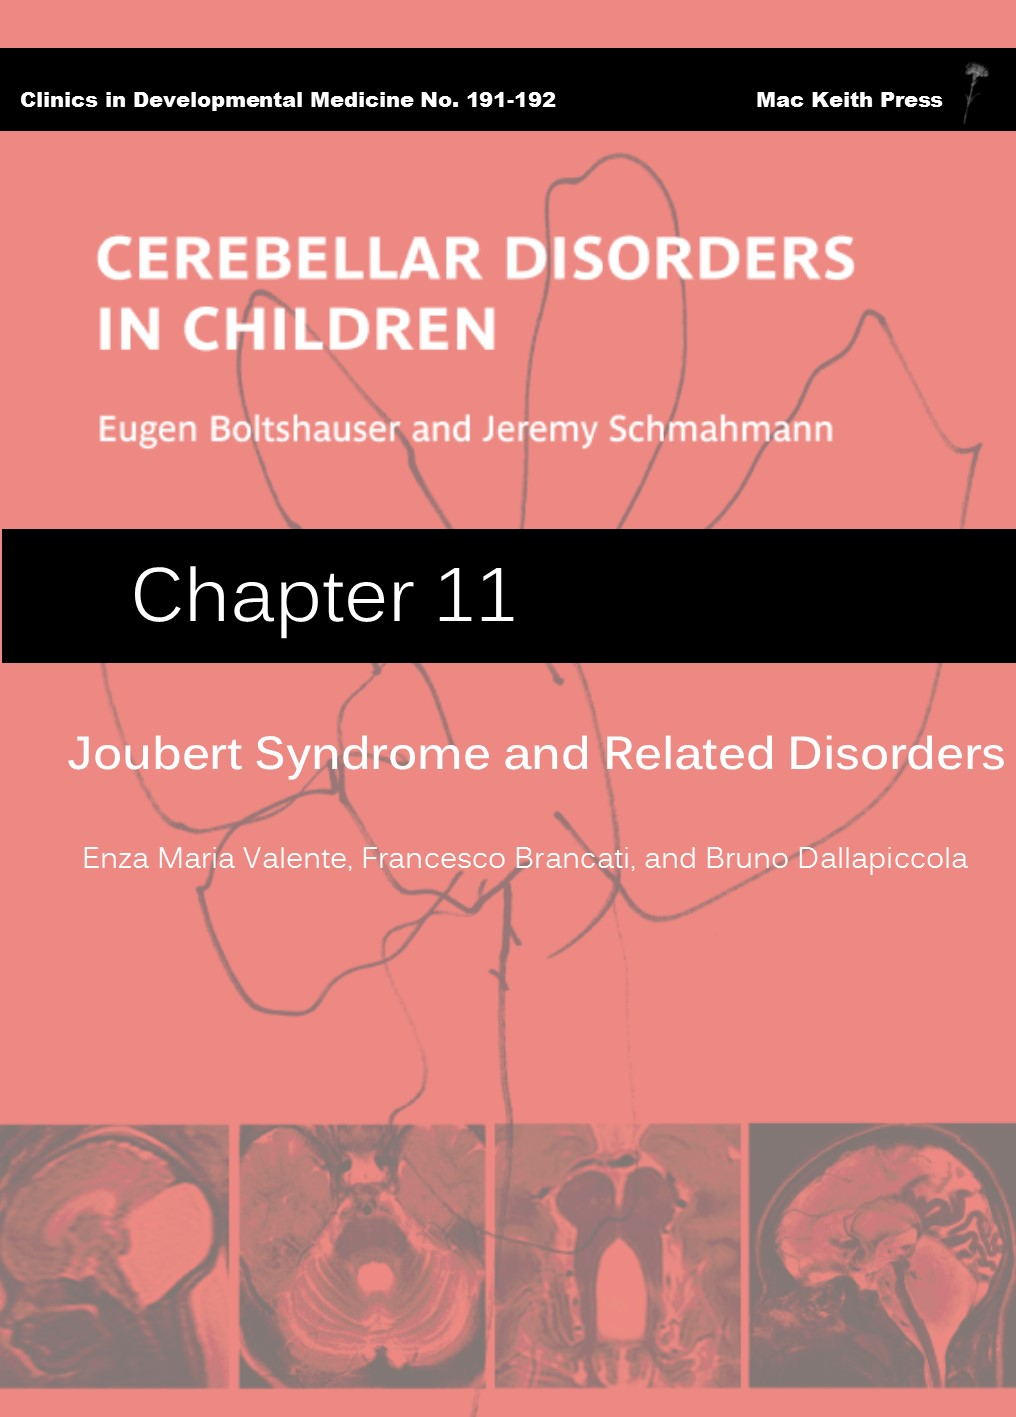 Joubert Syndrome and Related Disorders - Cerebellar Disorders in Children (Chapter 11) COVER